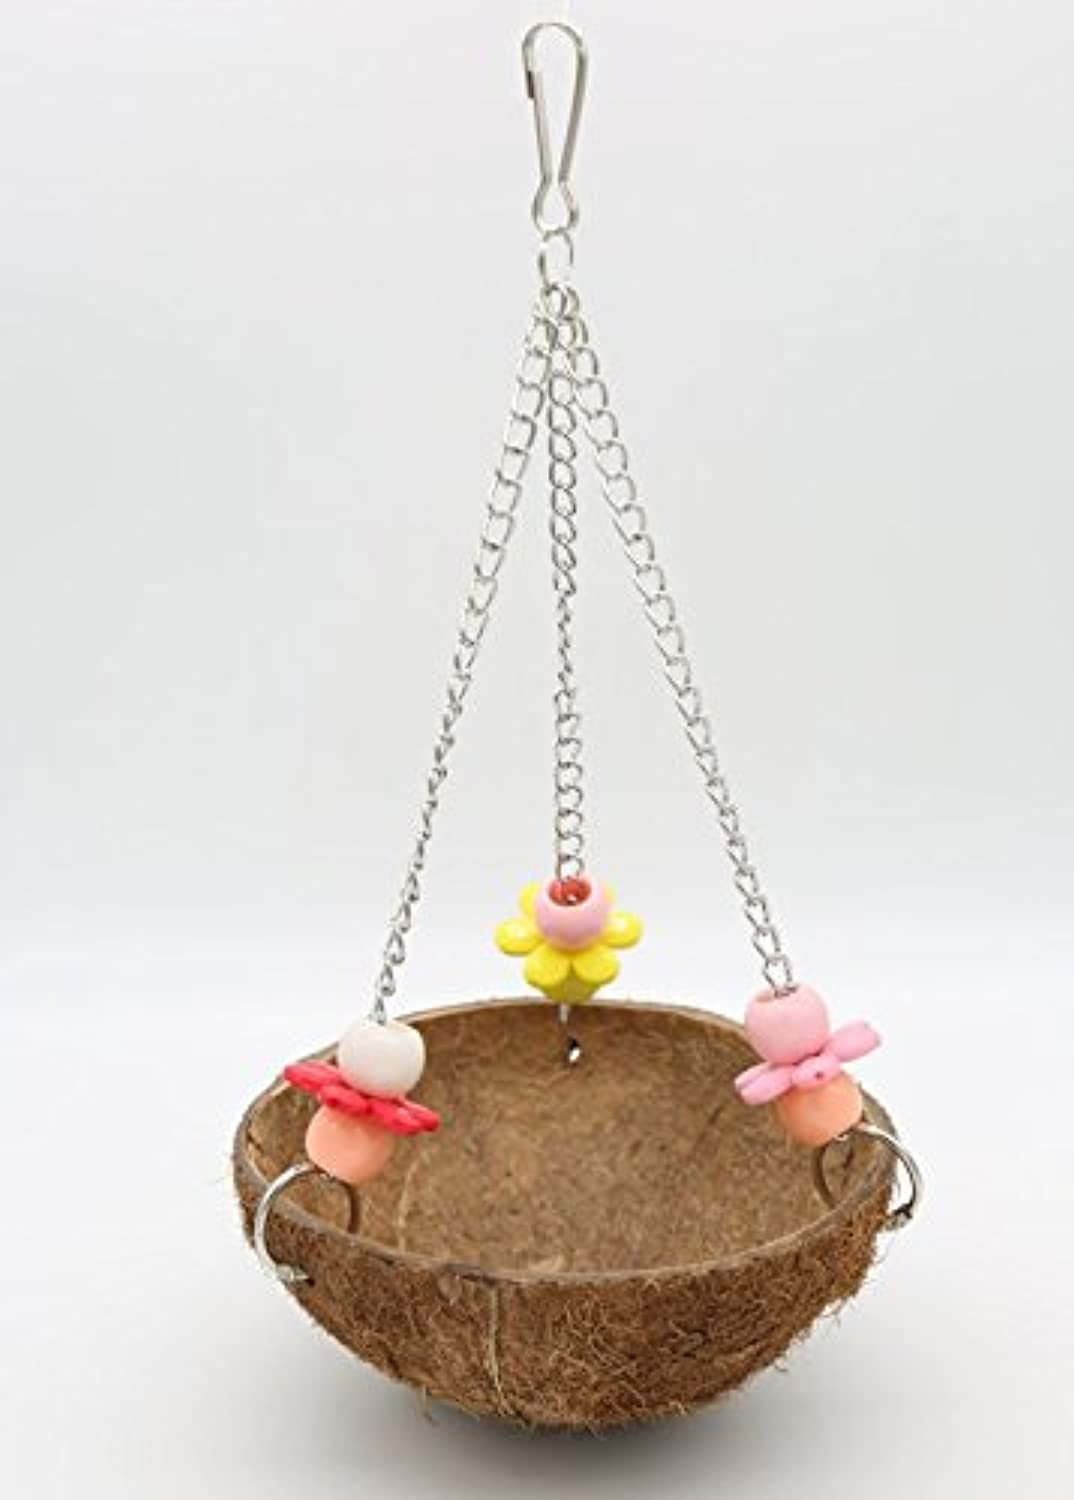 Old Tjikko Bird Nest, Parred Swing,Pet Bird Cage Toys,Coconut Nest with Hook (1pc)